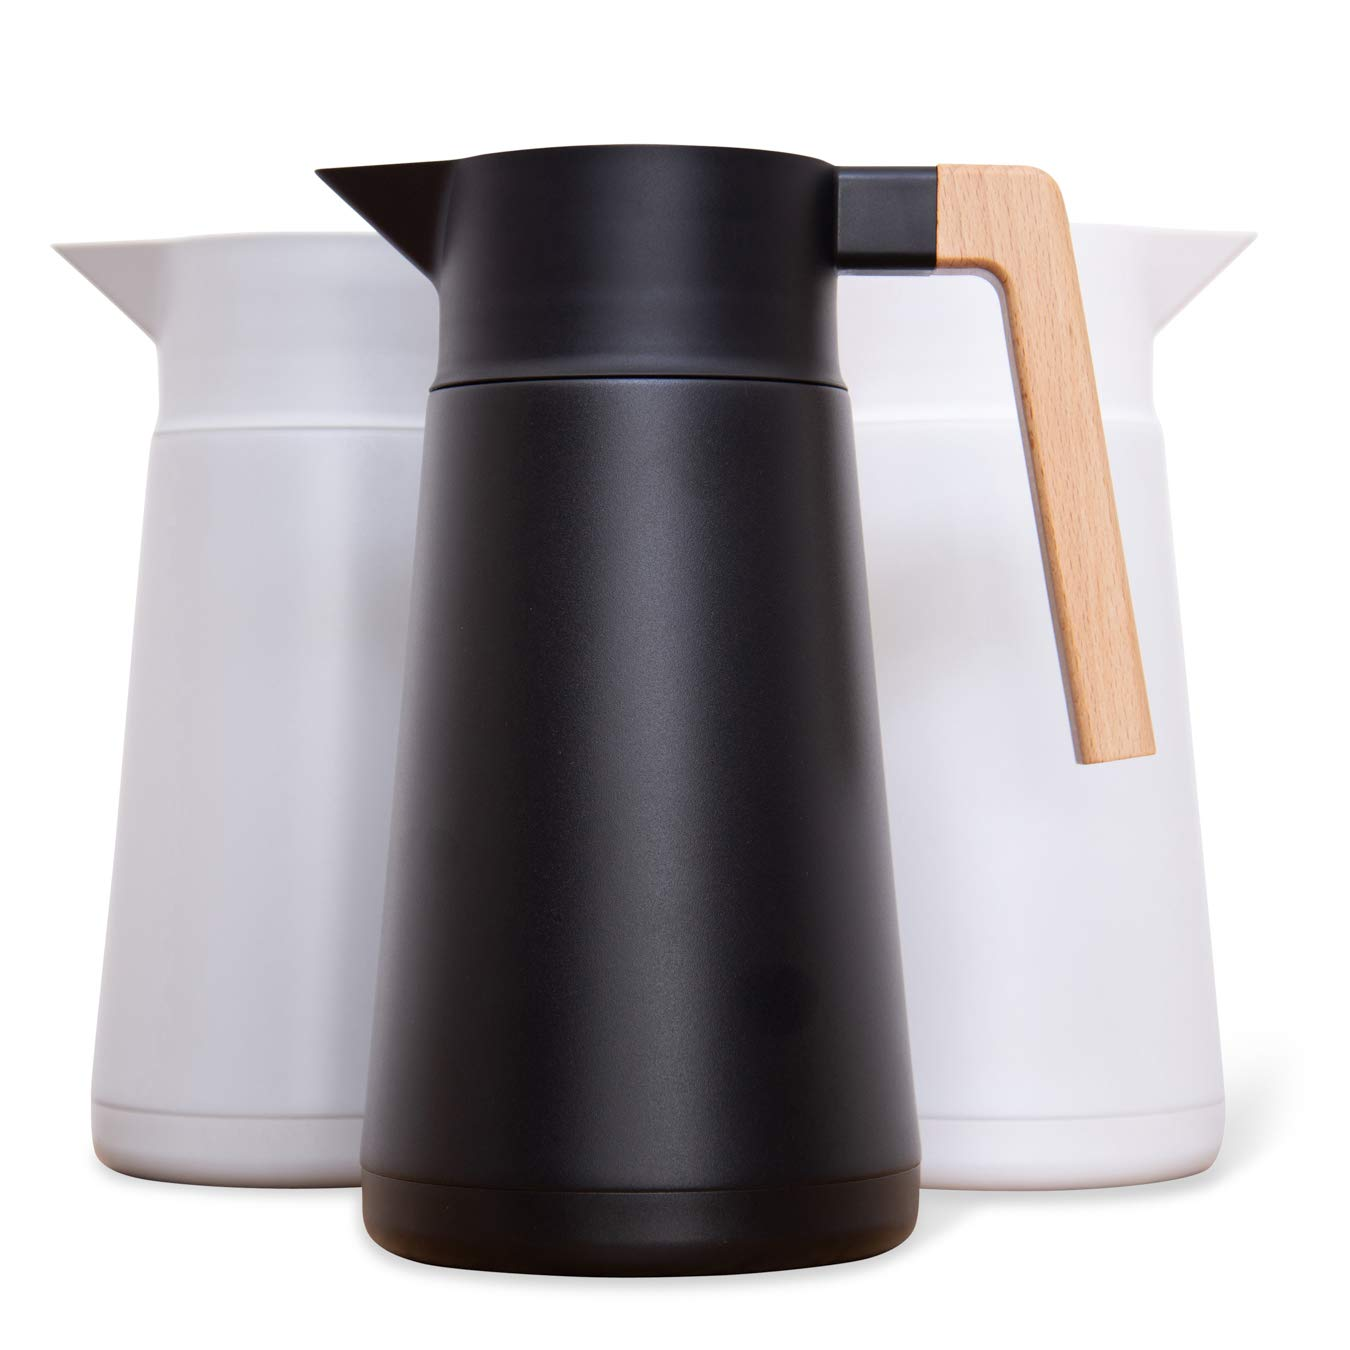 Large Thermal Coffee Carafe - Stainless Steel, Double Walled Thermal Pots For Coffee and Teas by Hastings Collective - Black, Vacuum Carafes With Removable Tea Infuser and Strainer | 68 Oz. by Hastings Collective